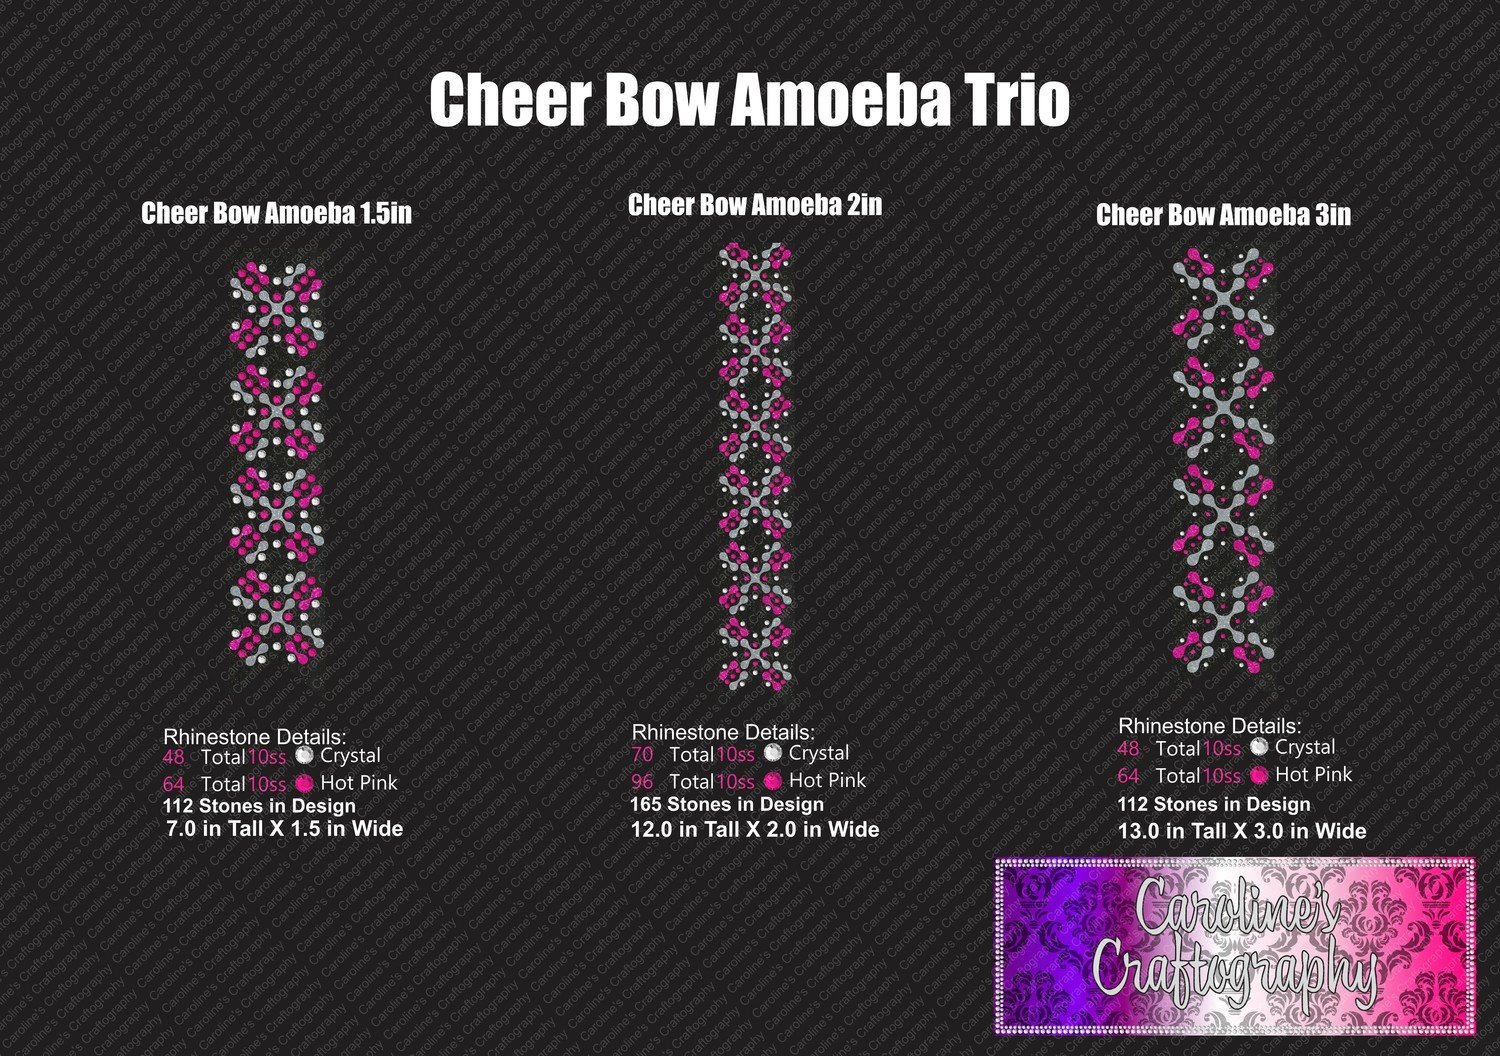 Ameoba Stone Vinyl Trio Cheer Bow